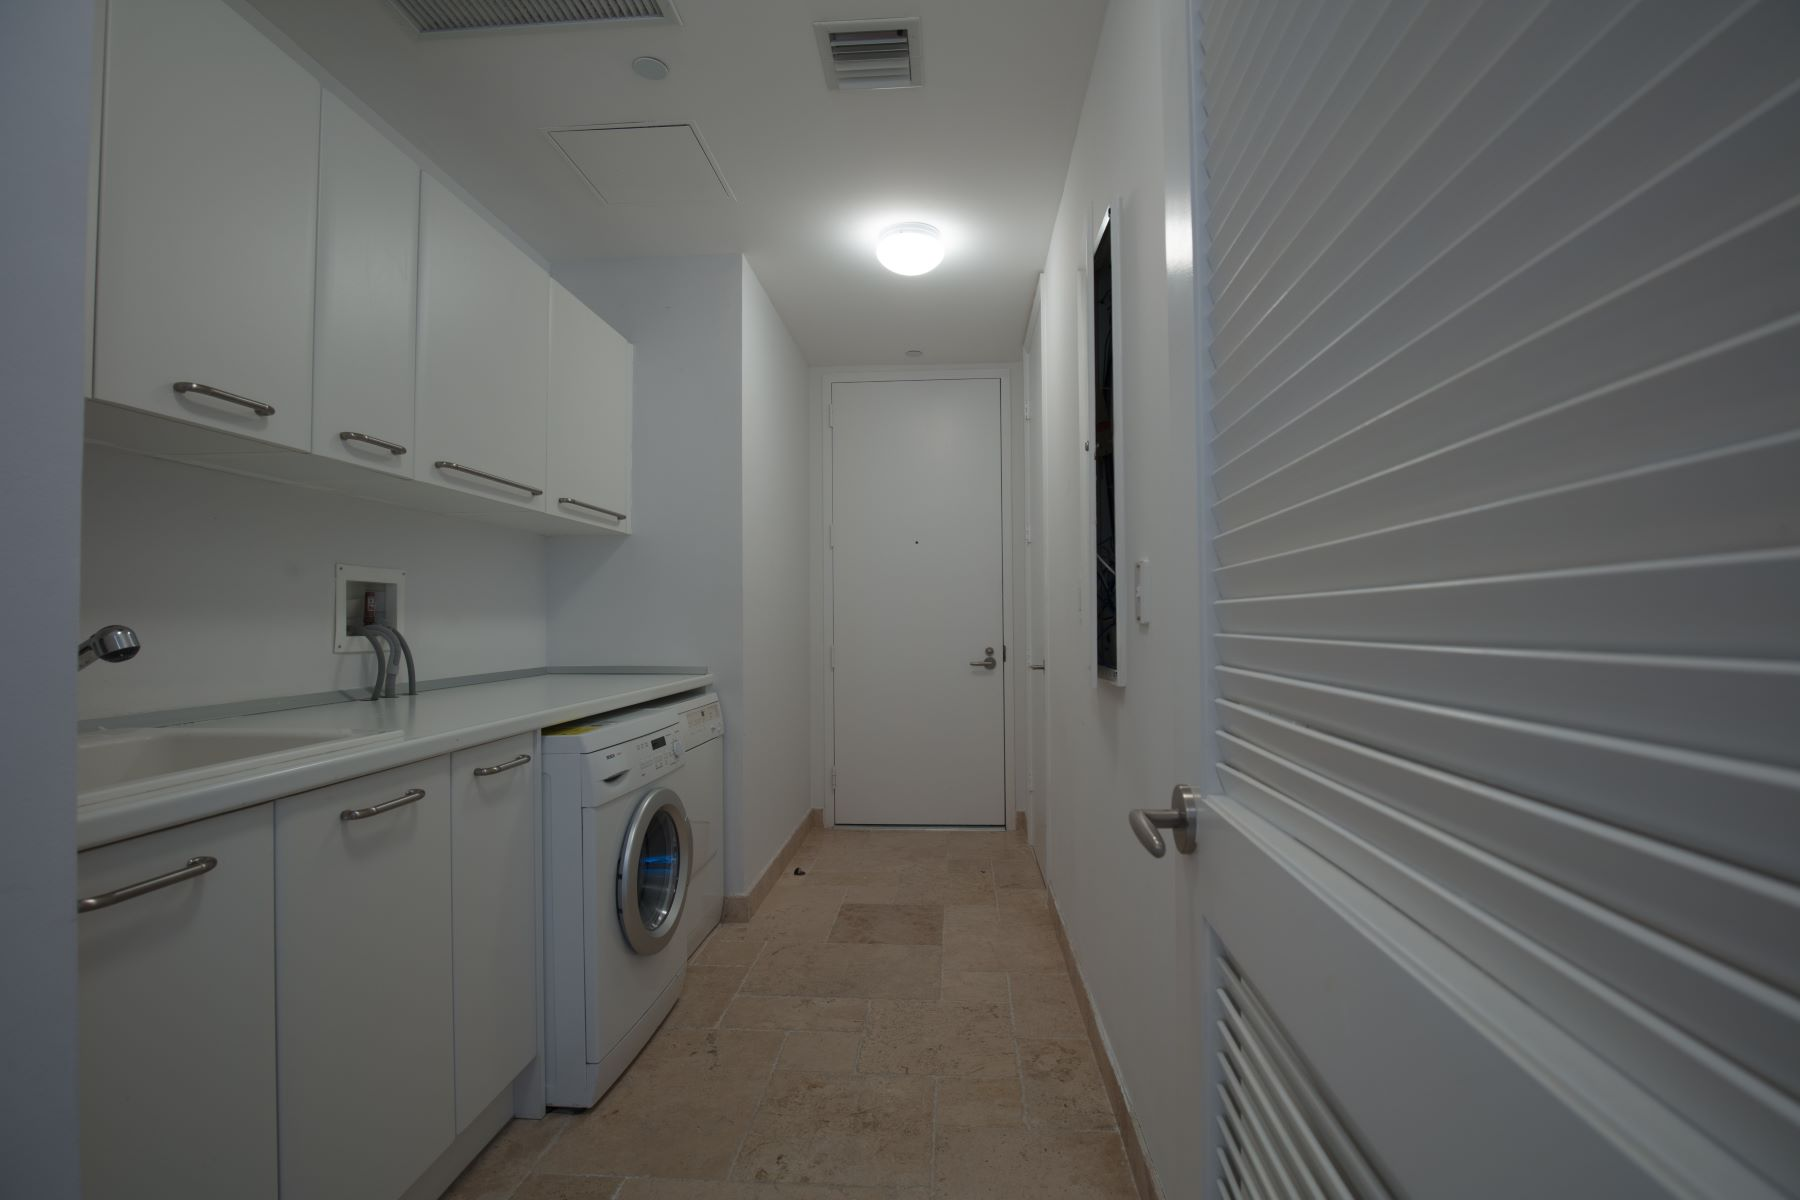 Additional photo for property listing at 16051 Collins Ave 16051 Collins Ave 2802 阳光岛海岸, 佛罗里达州 33160 美国